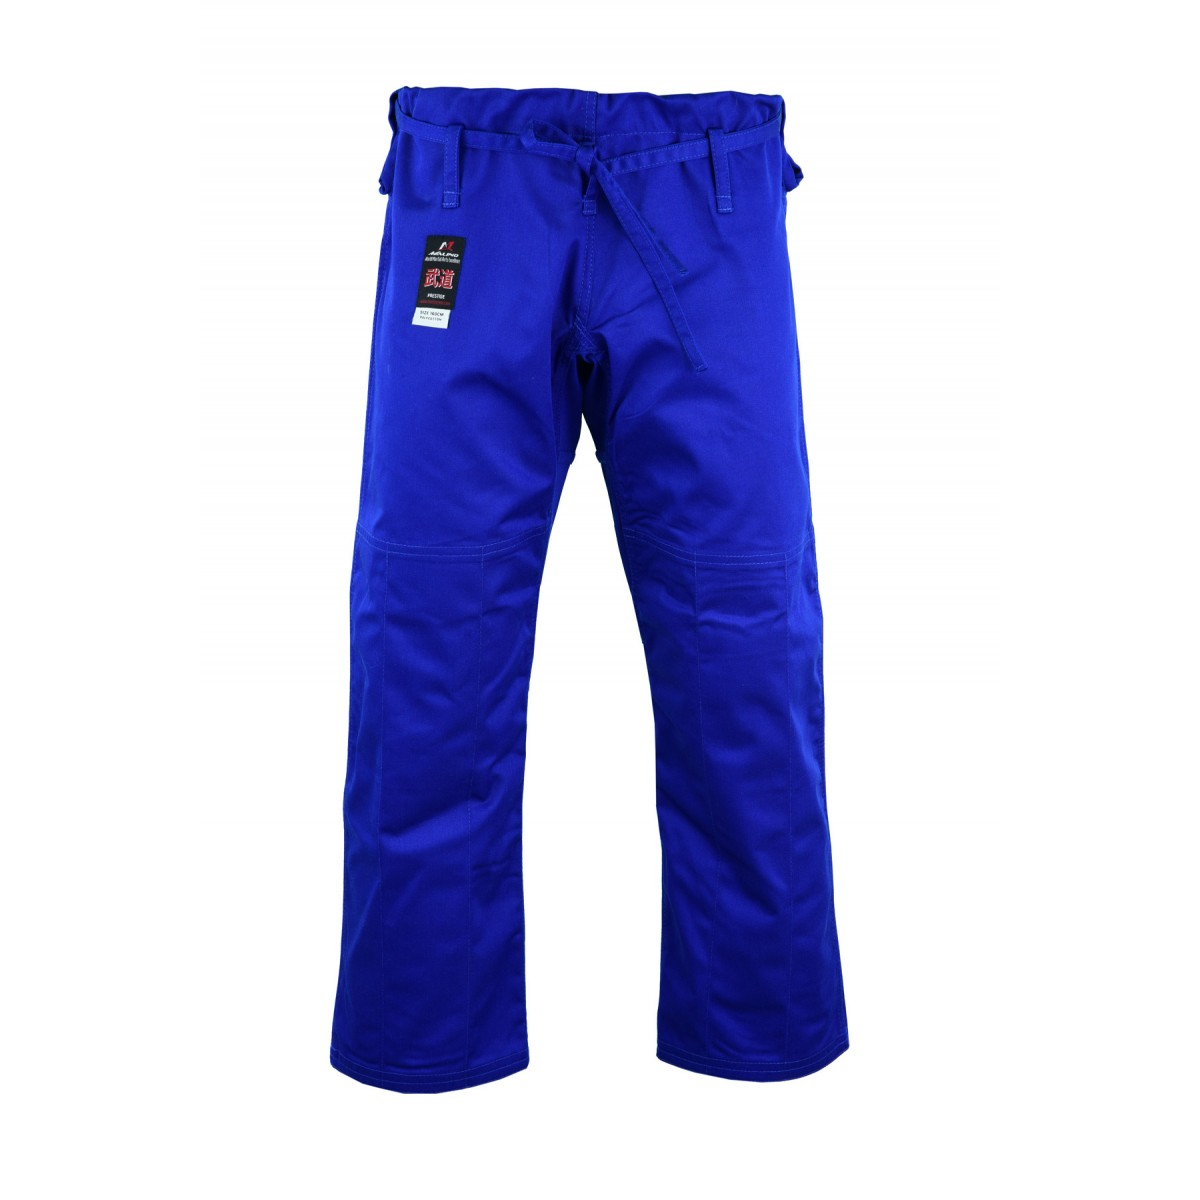 Malino Kids Heavyweight Judo Trousers Blue - 750g